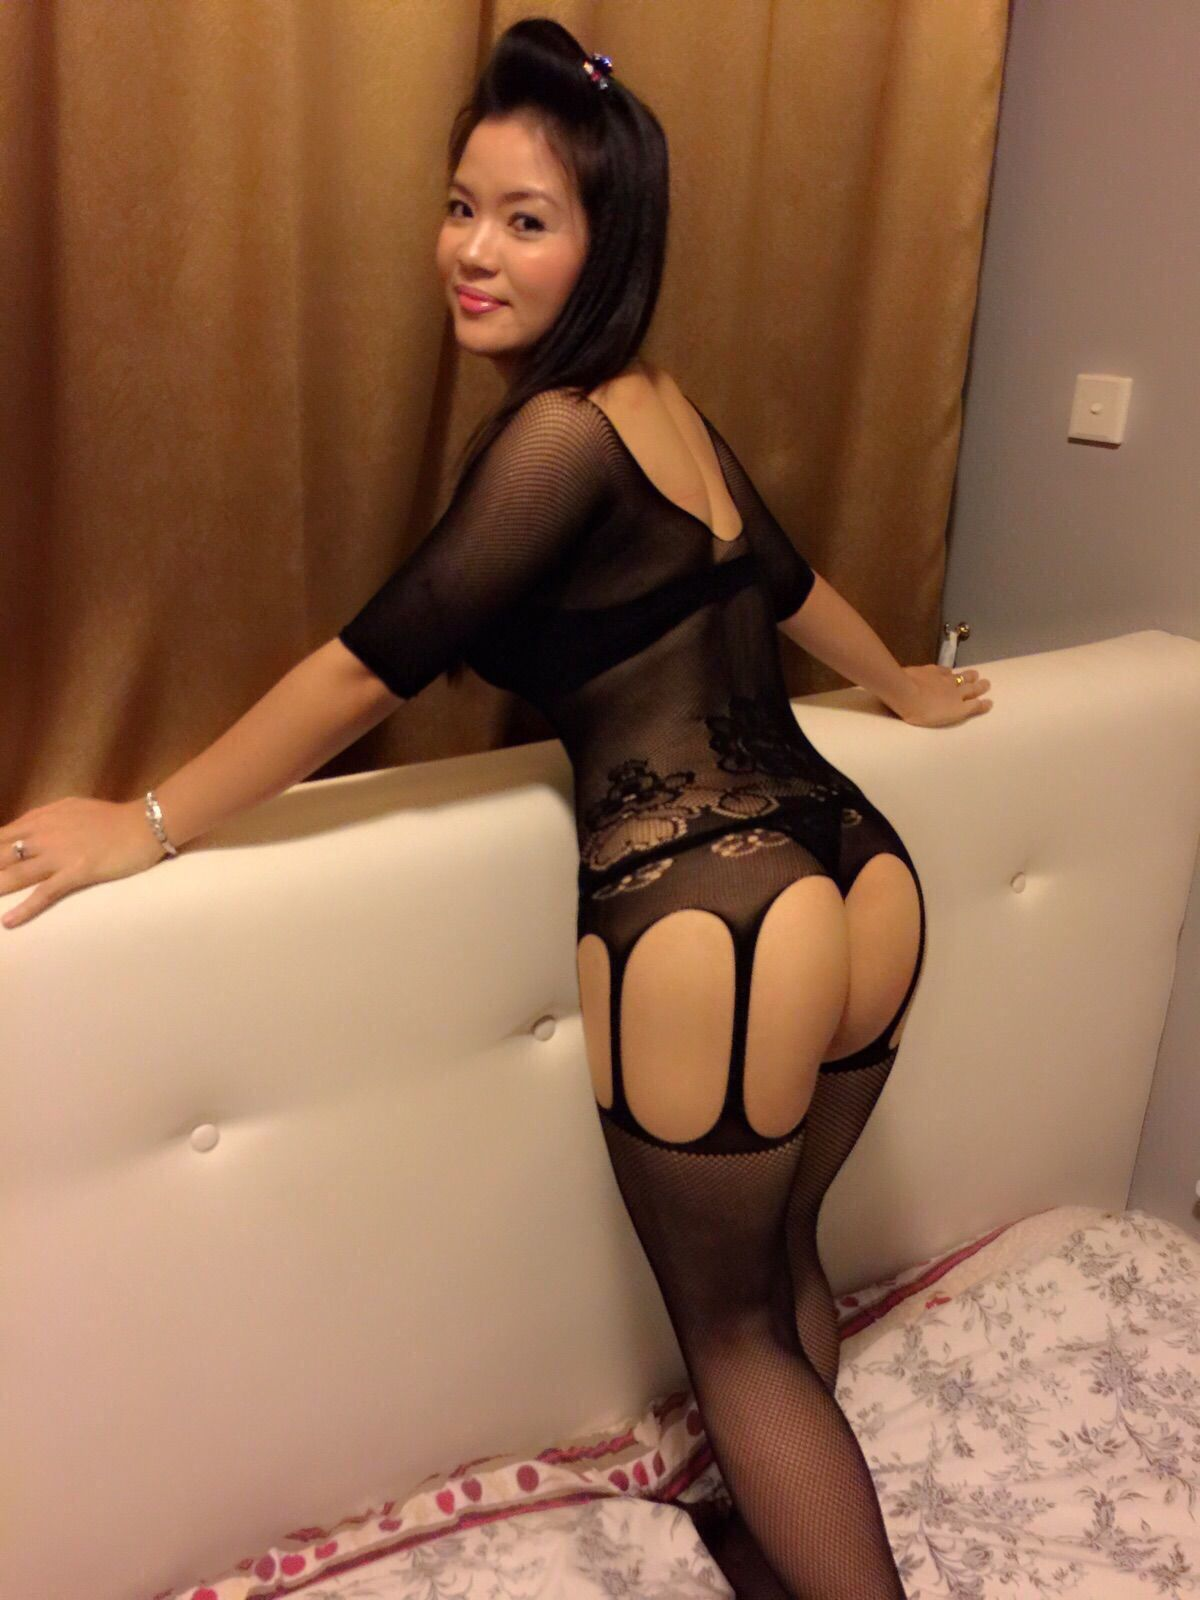 thaimassage hisingen sex toy